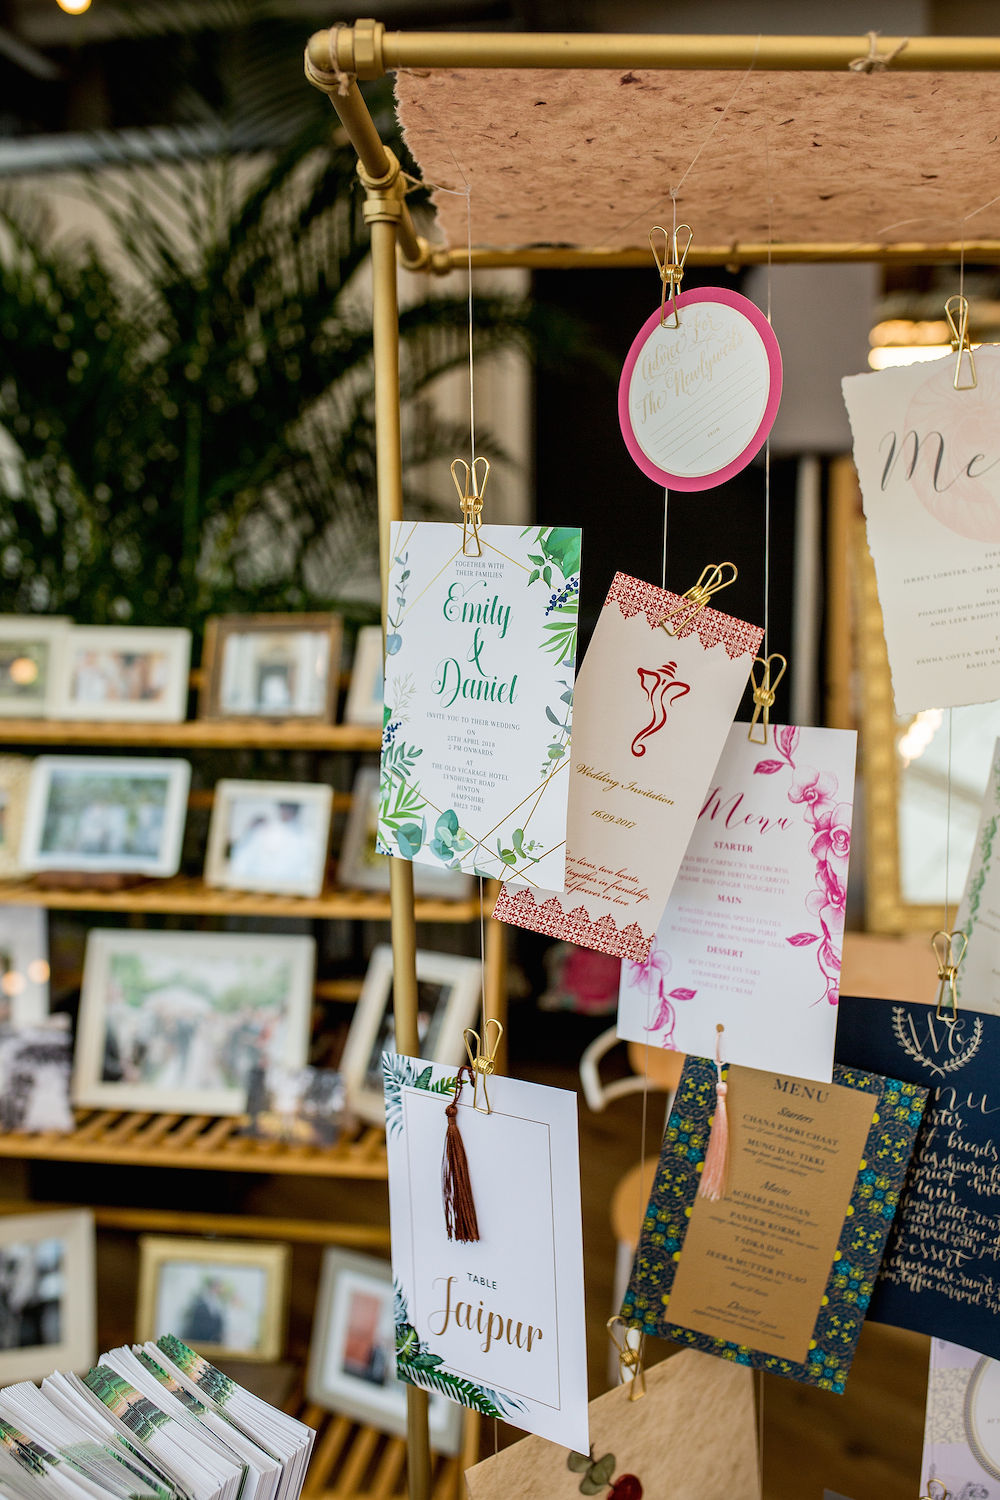 Wedding stationery hanging on display at a vendor stand for a London wedding industry event